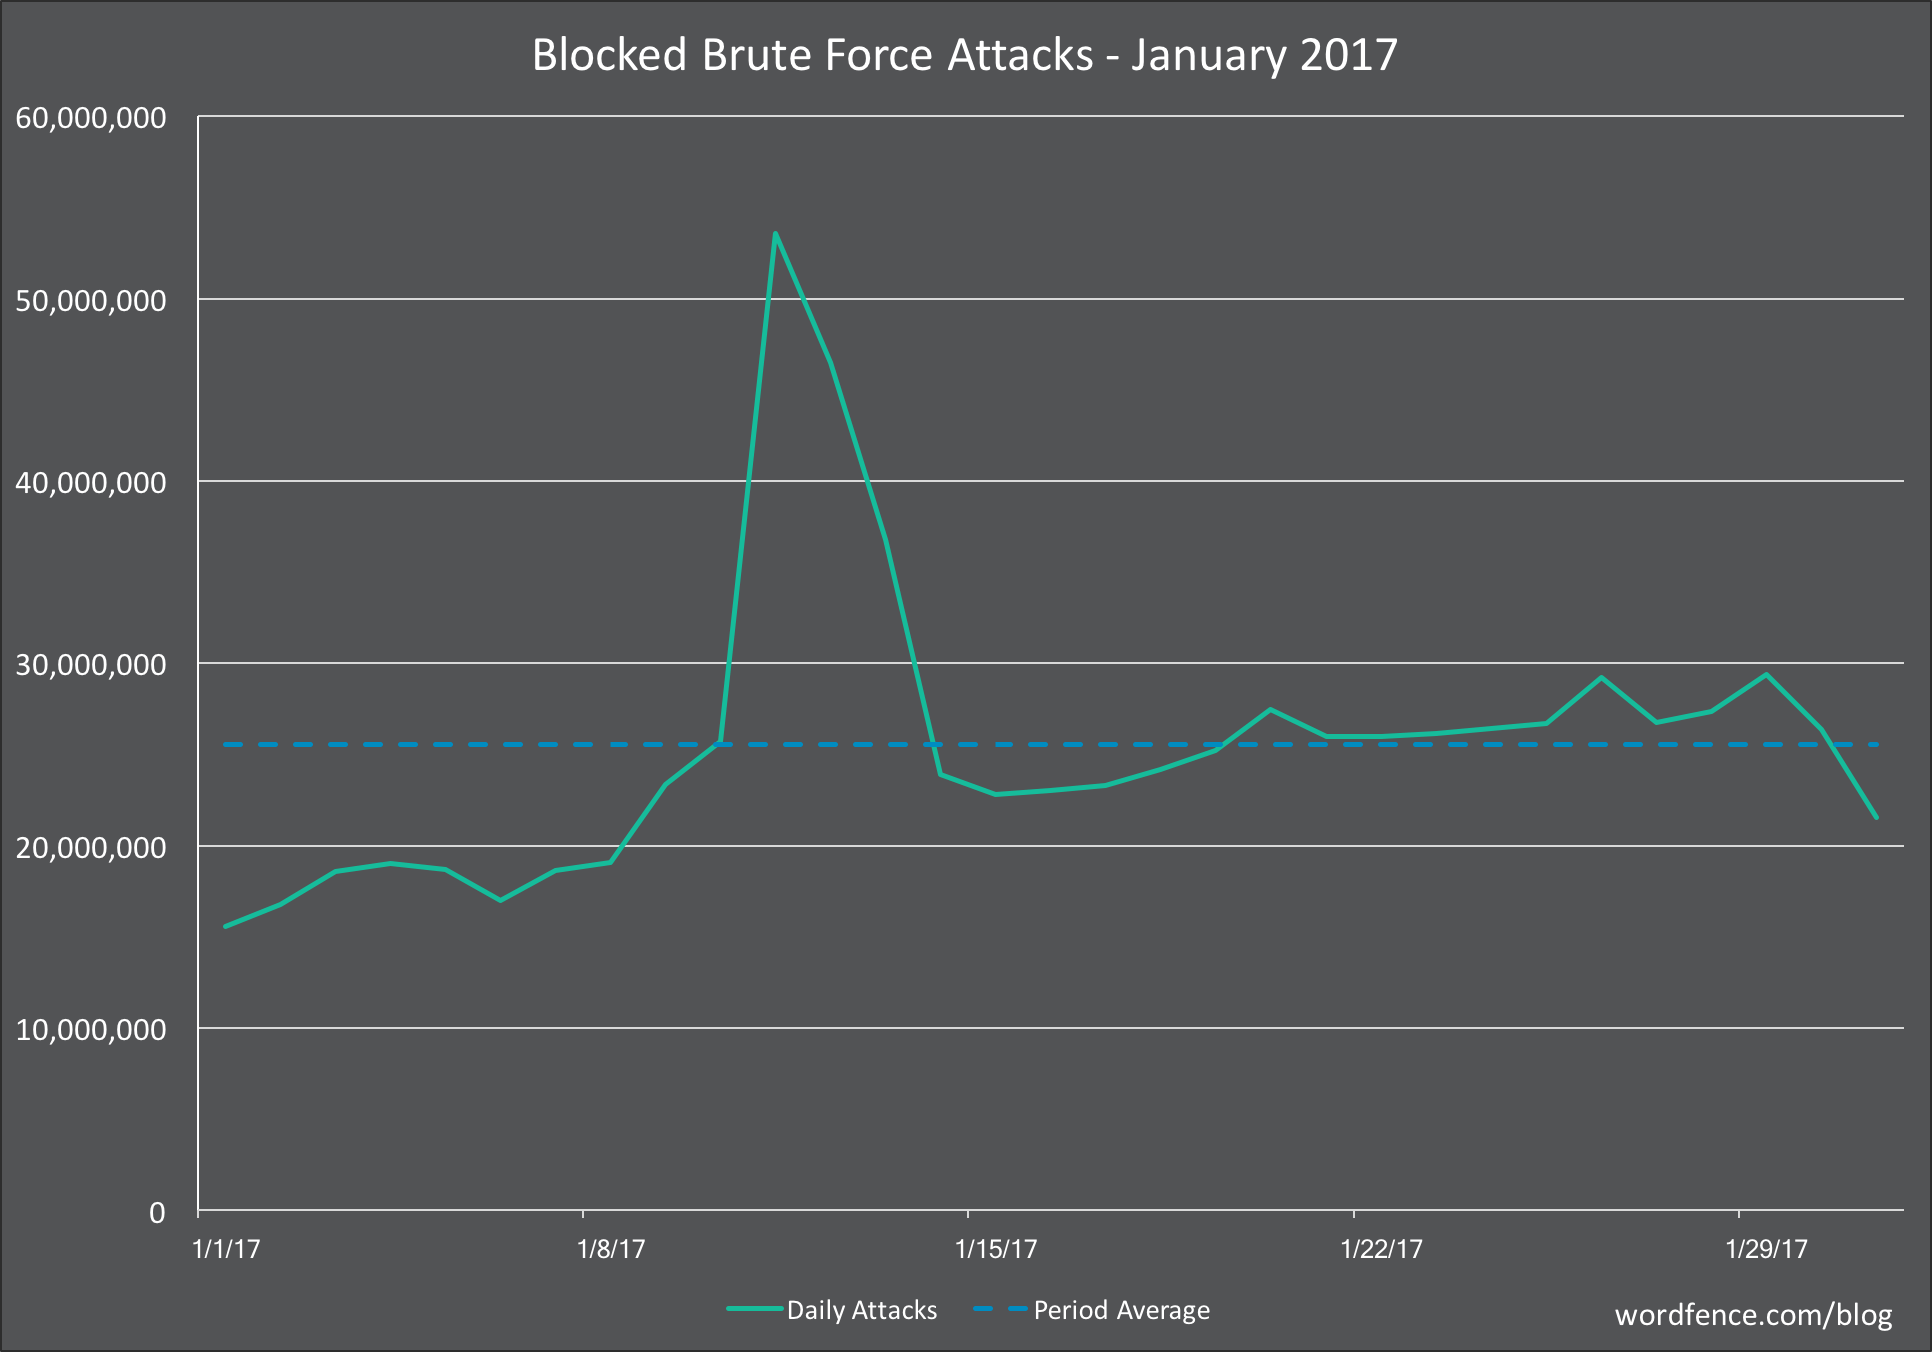 Brute Force Attacks on WordPress in January 2017